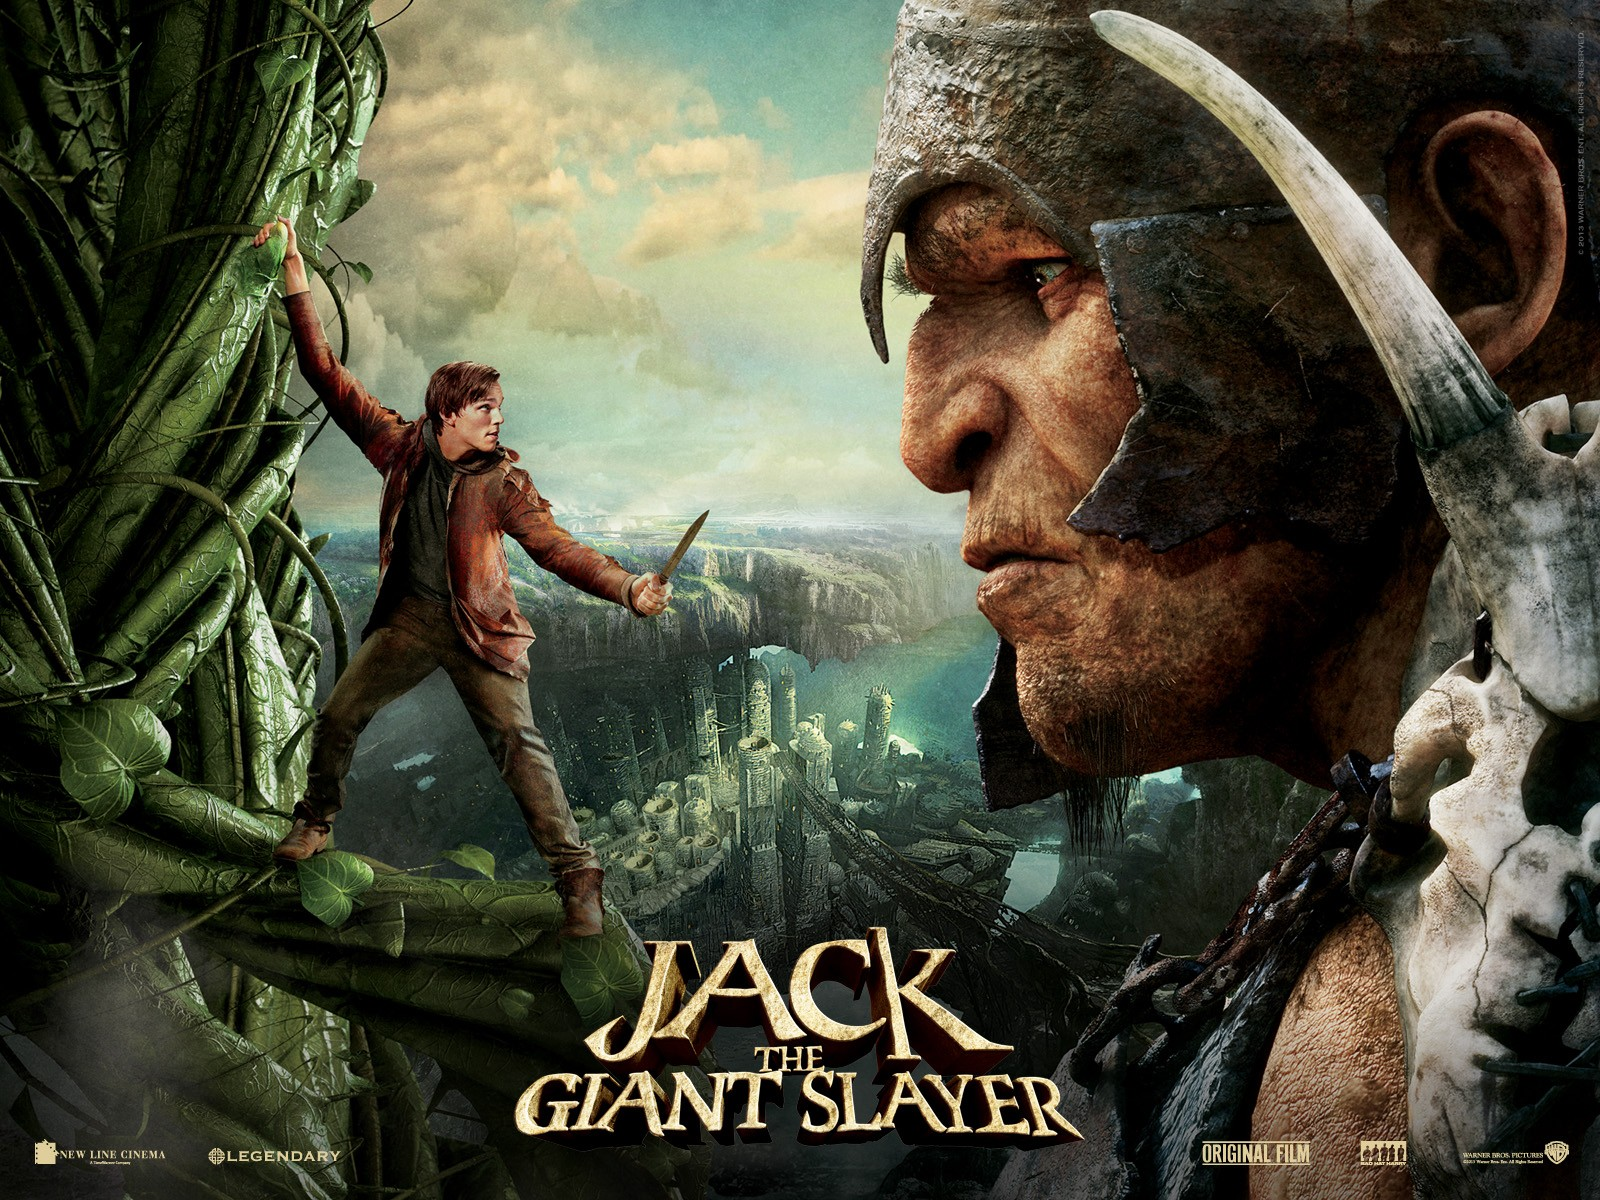 movie review jack the giant slayer 2013 my blog city by vincent loy. Black Bedroom Furniture Sets. Home Design Ideas